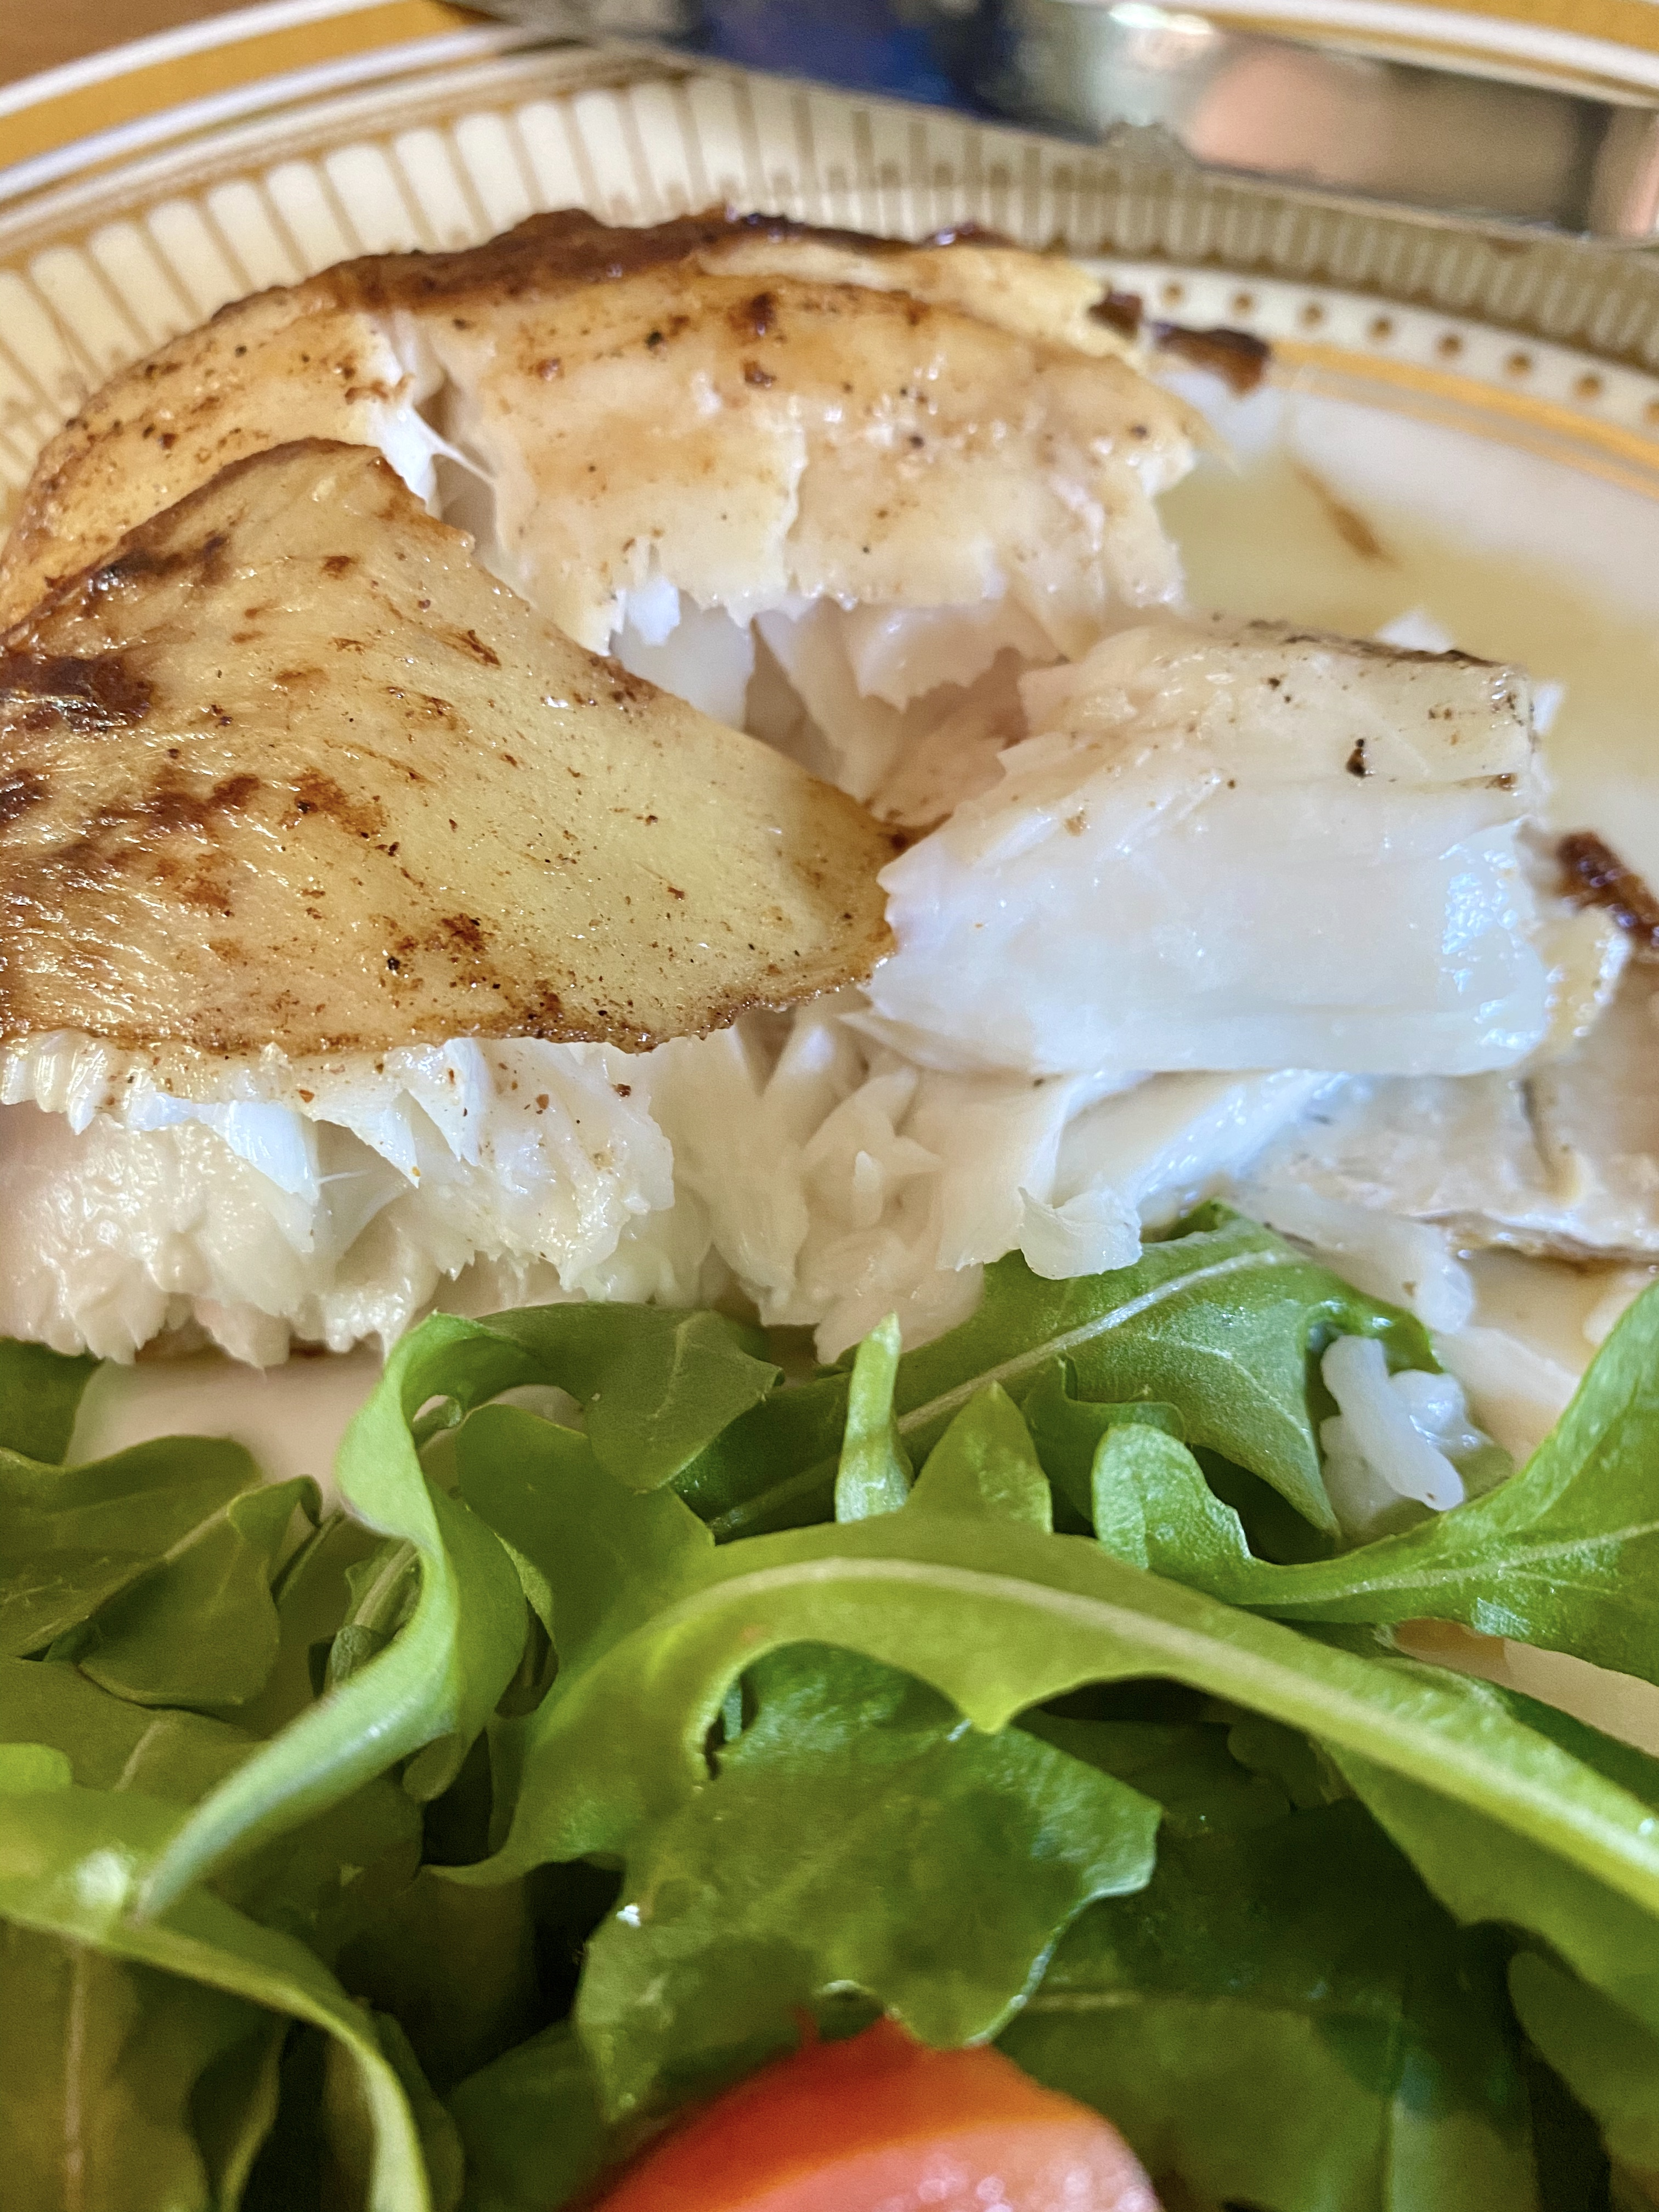 Ginger-crusted halibut cut with arugula and tomato salad.